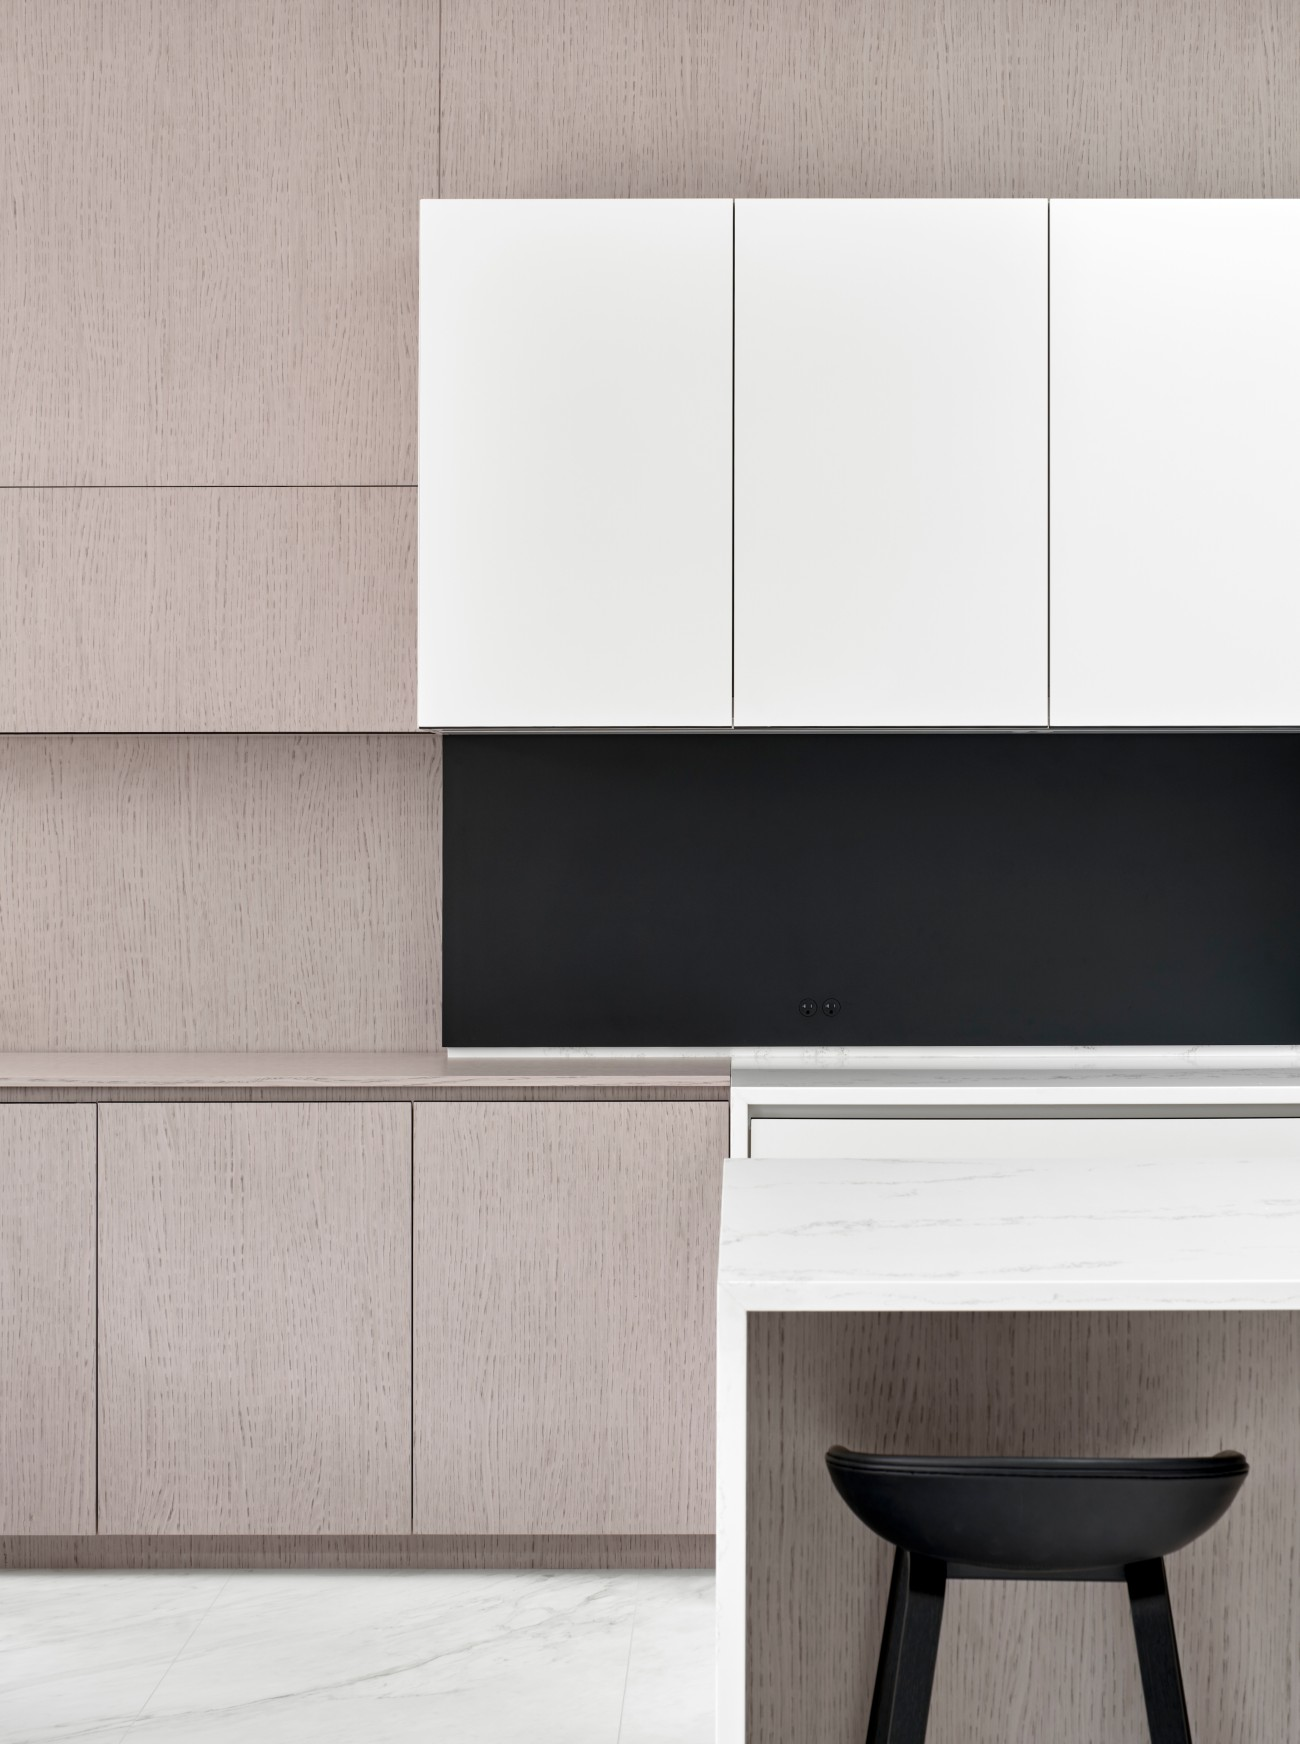 HanStone quartz surfaces and a powder-coated steel backsplash complement the home's high contrast motif.